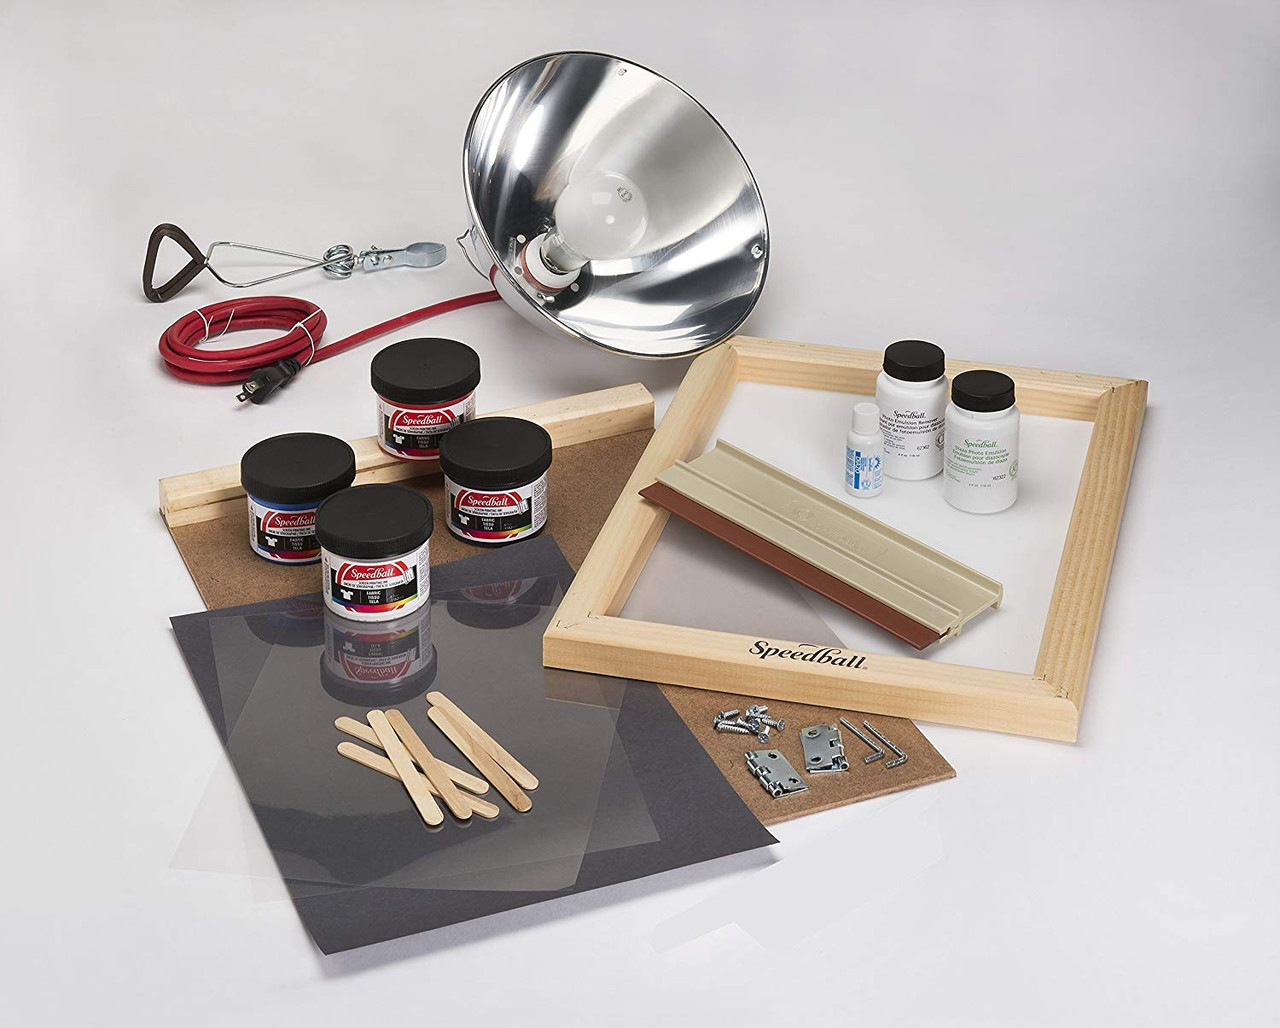 Advanced All-In-One Screen Print Kit items